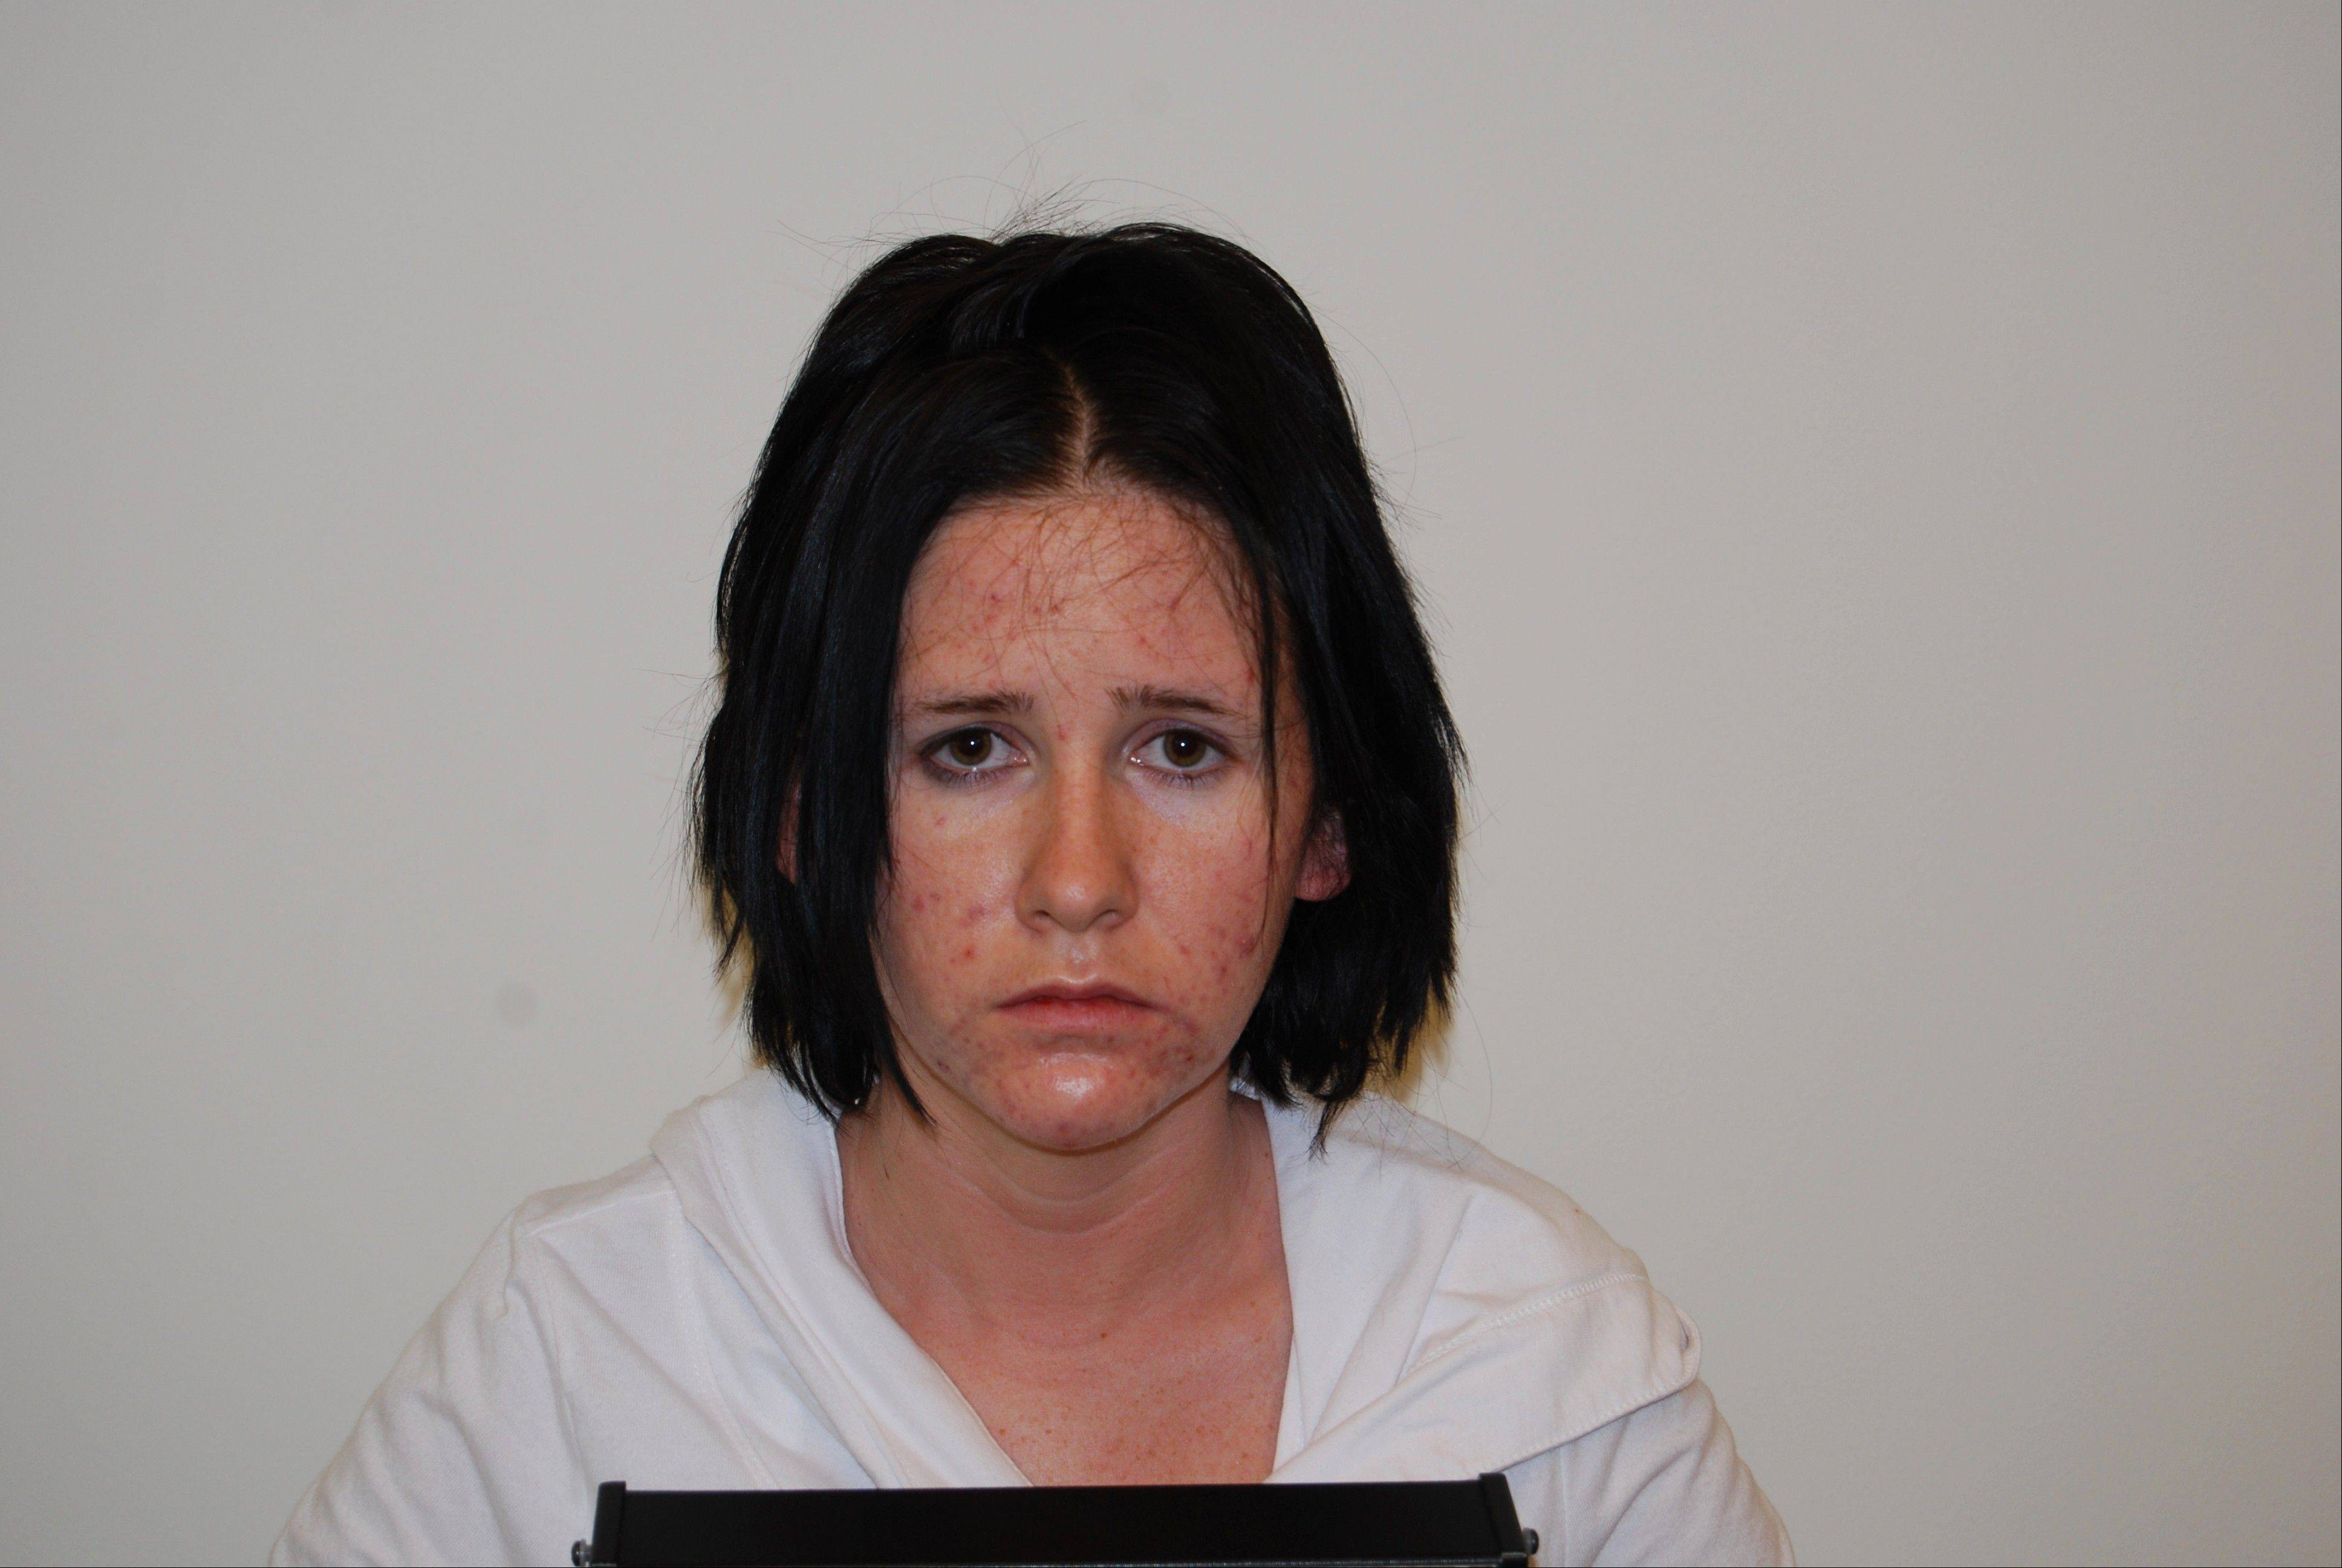 Melissa Calusinski of Carpentersville is accused of the 2009 murder of a toddler at a Lincolnshire day care center.